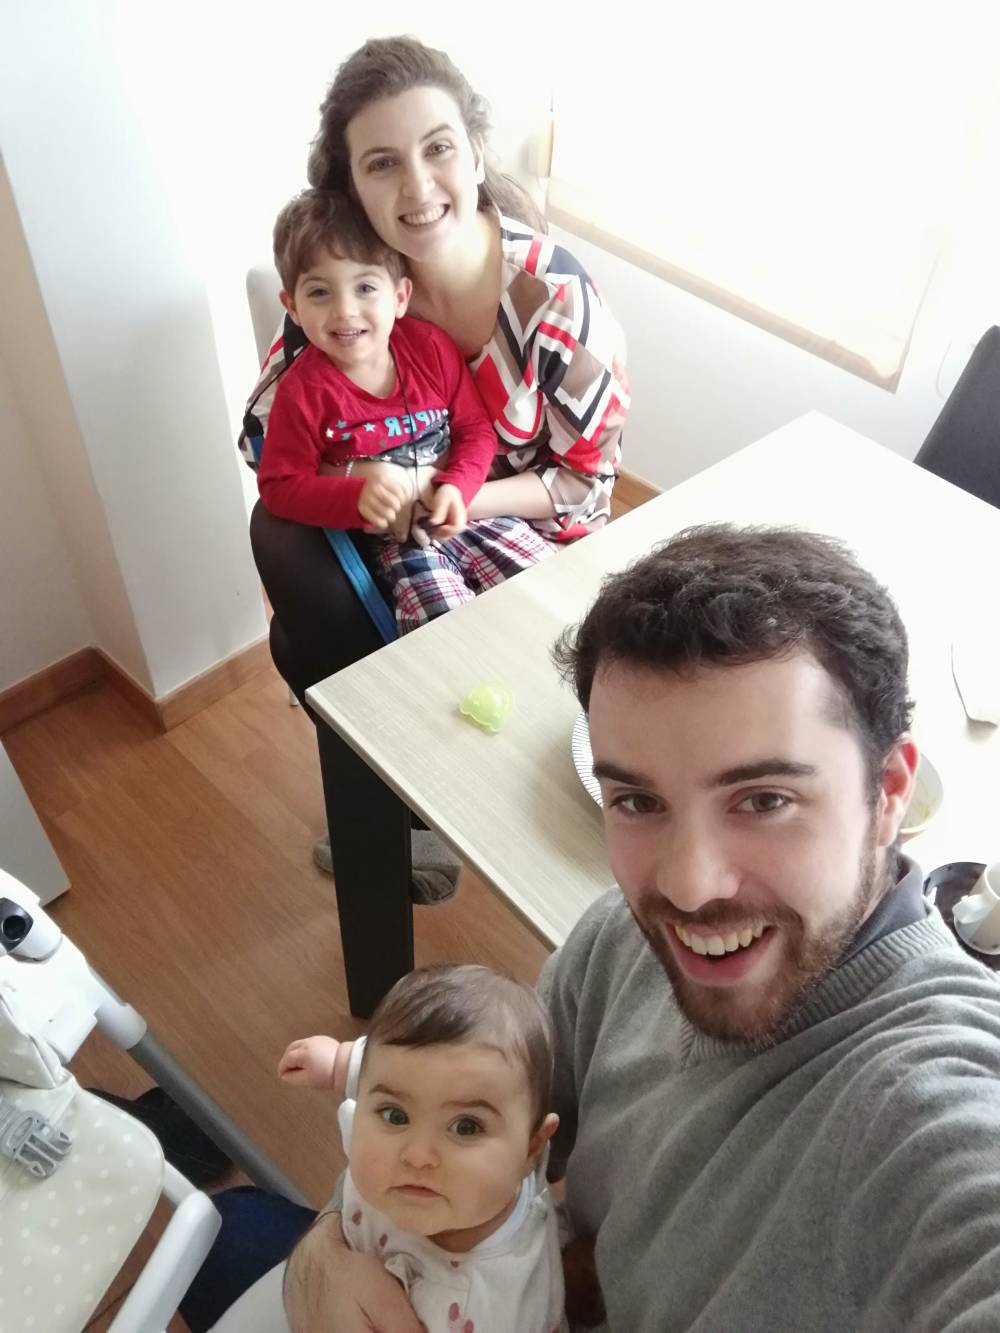 Sara Infante, with her husband João and children Estêvão and Esperança on Christmas morning.